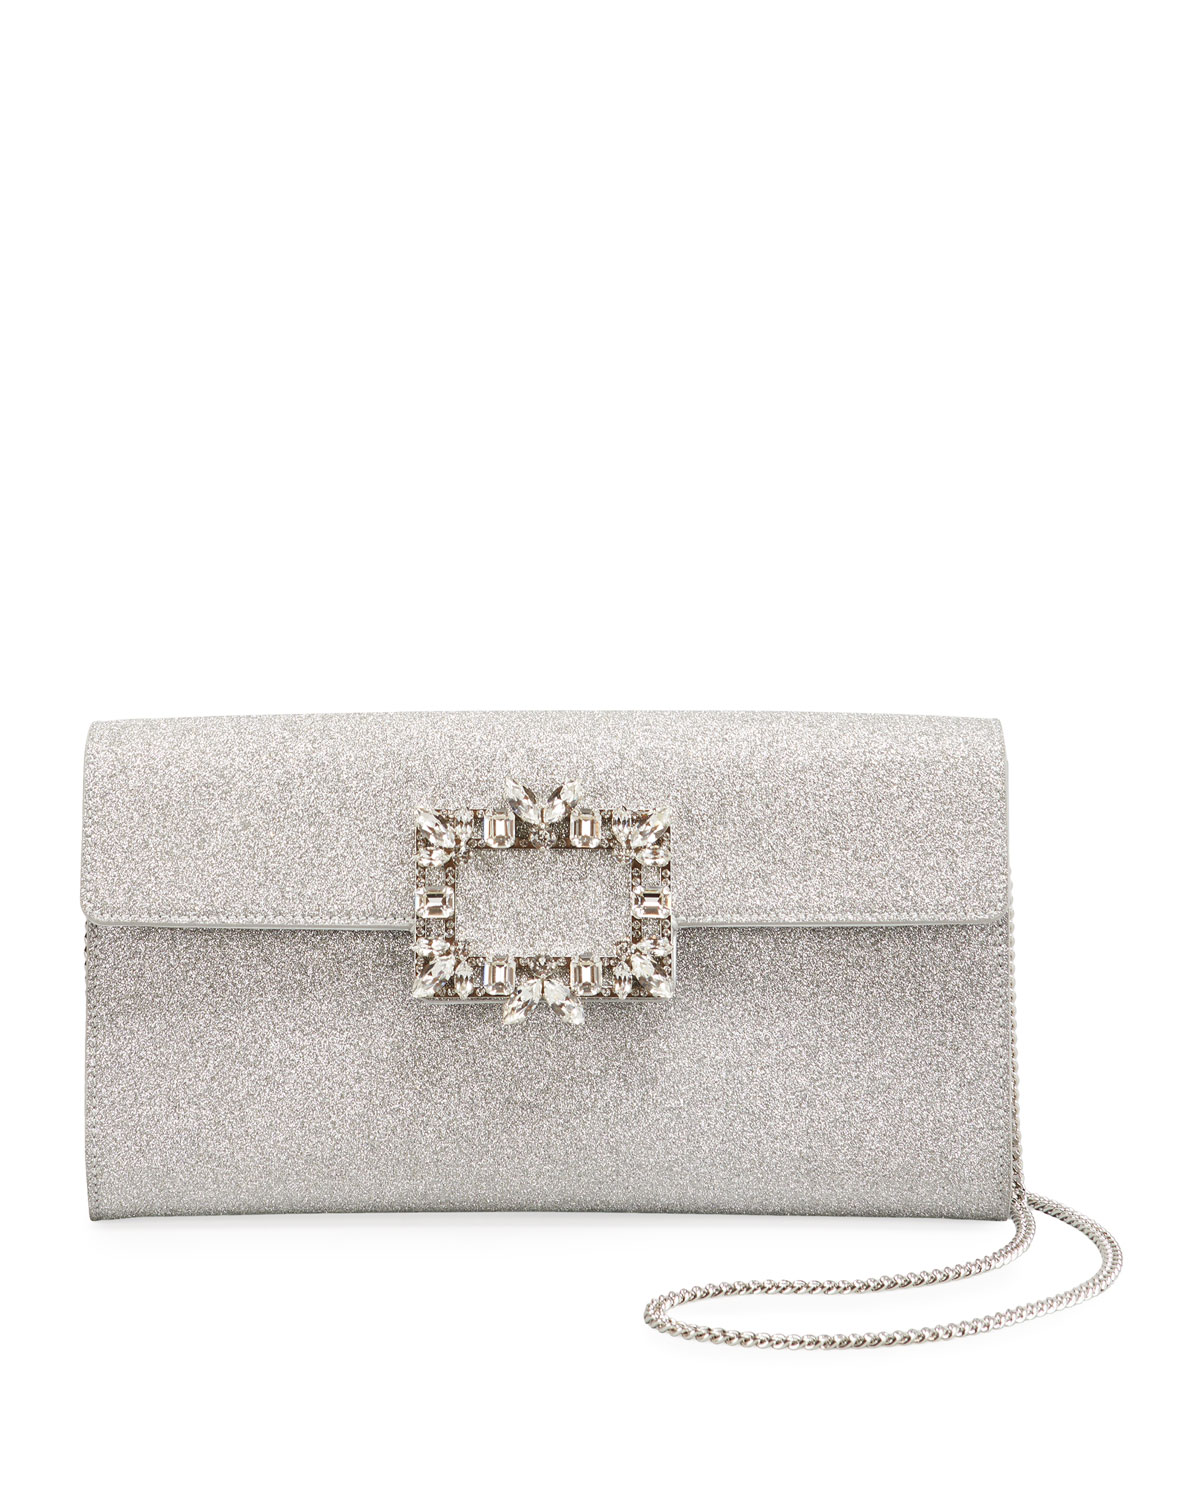 Roger Vivier RV Broche Glitter Envelope Flap Clutch Bag